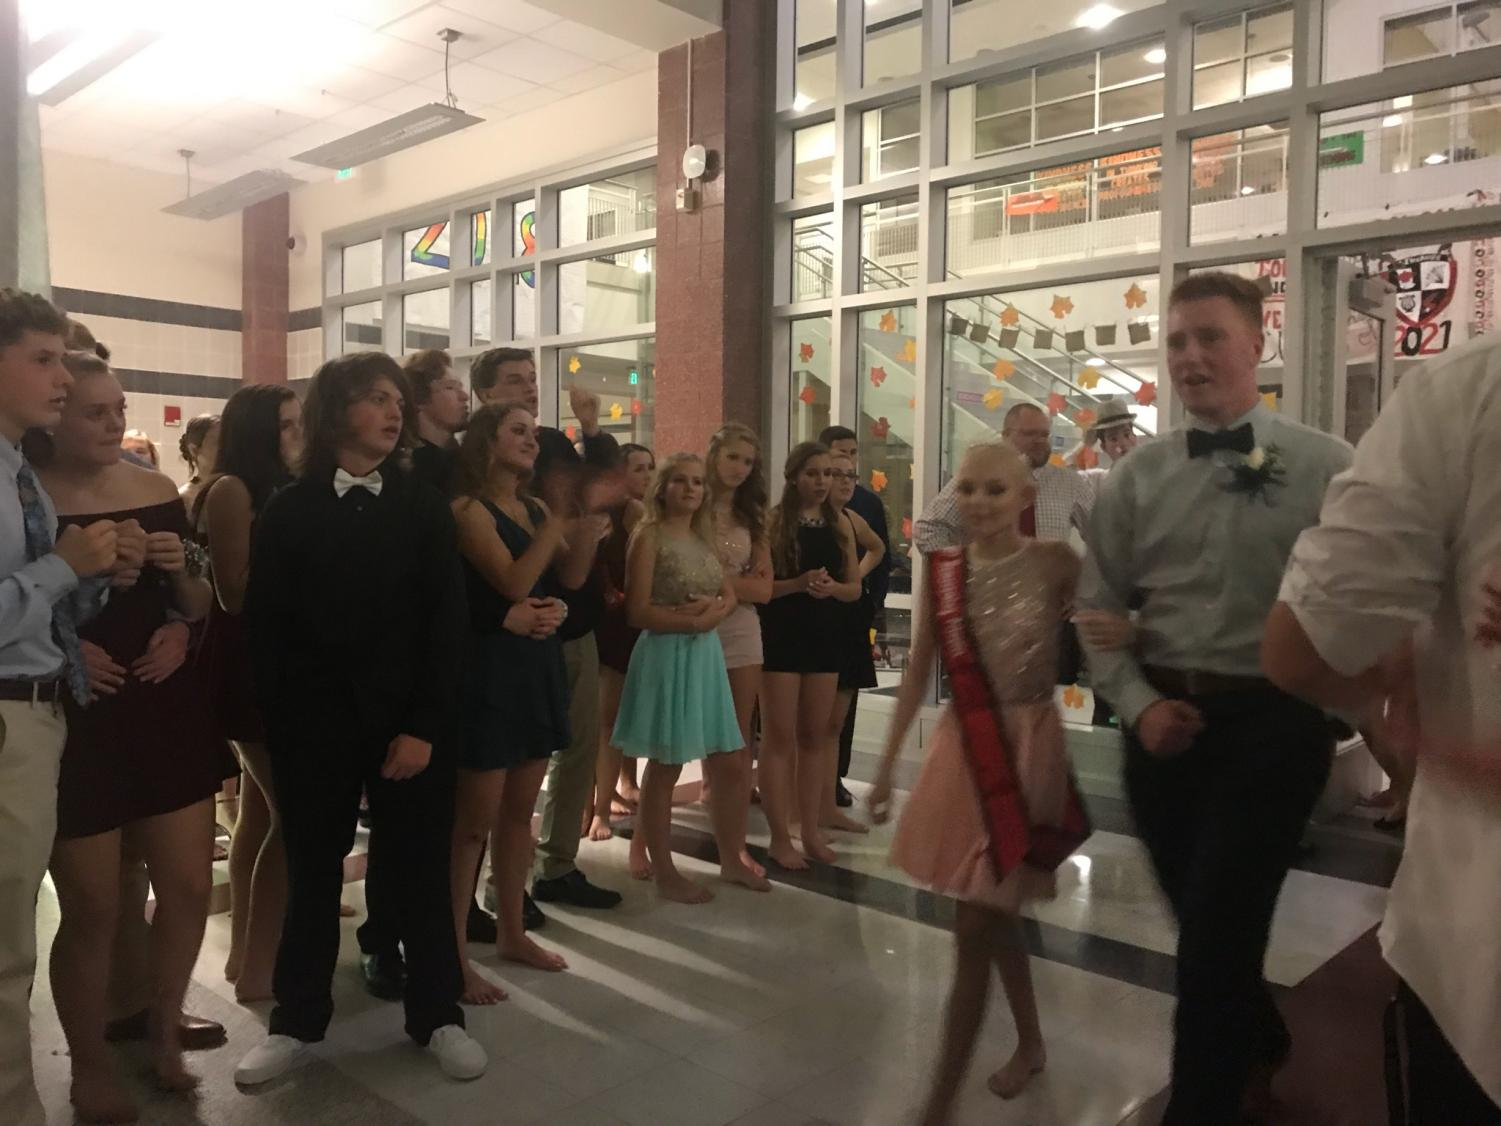 Prince Garrett Reese and Princess Lily Weaver of class of 2019 enter the dance.